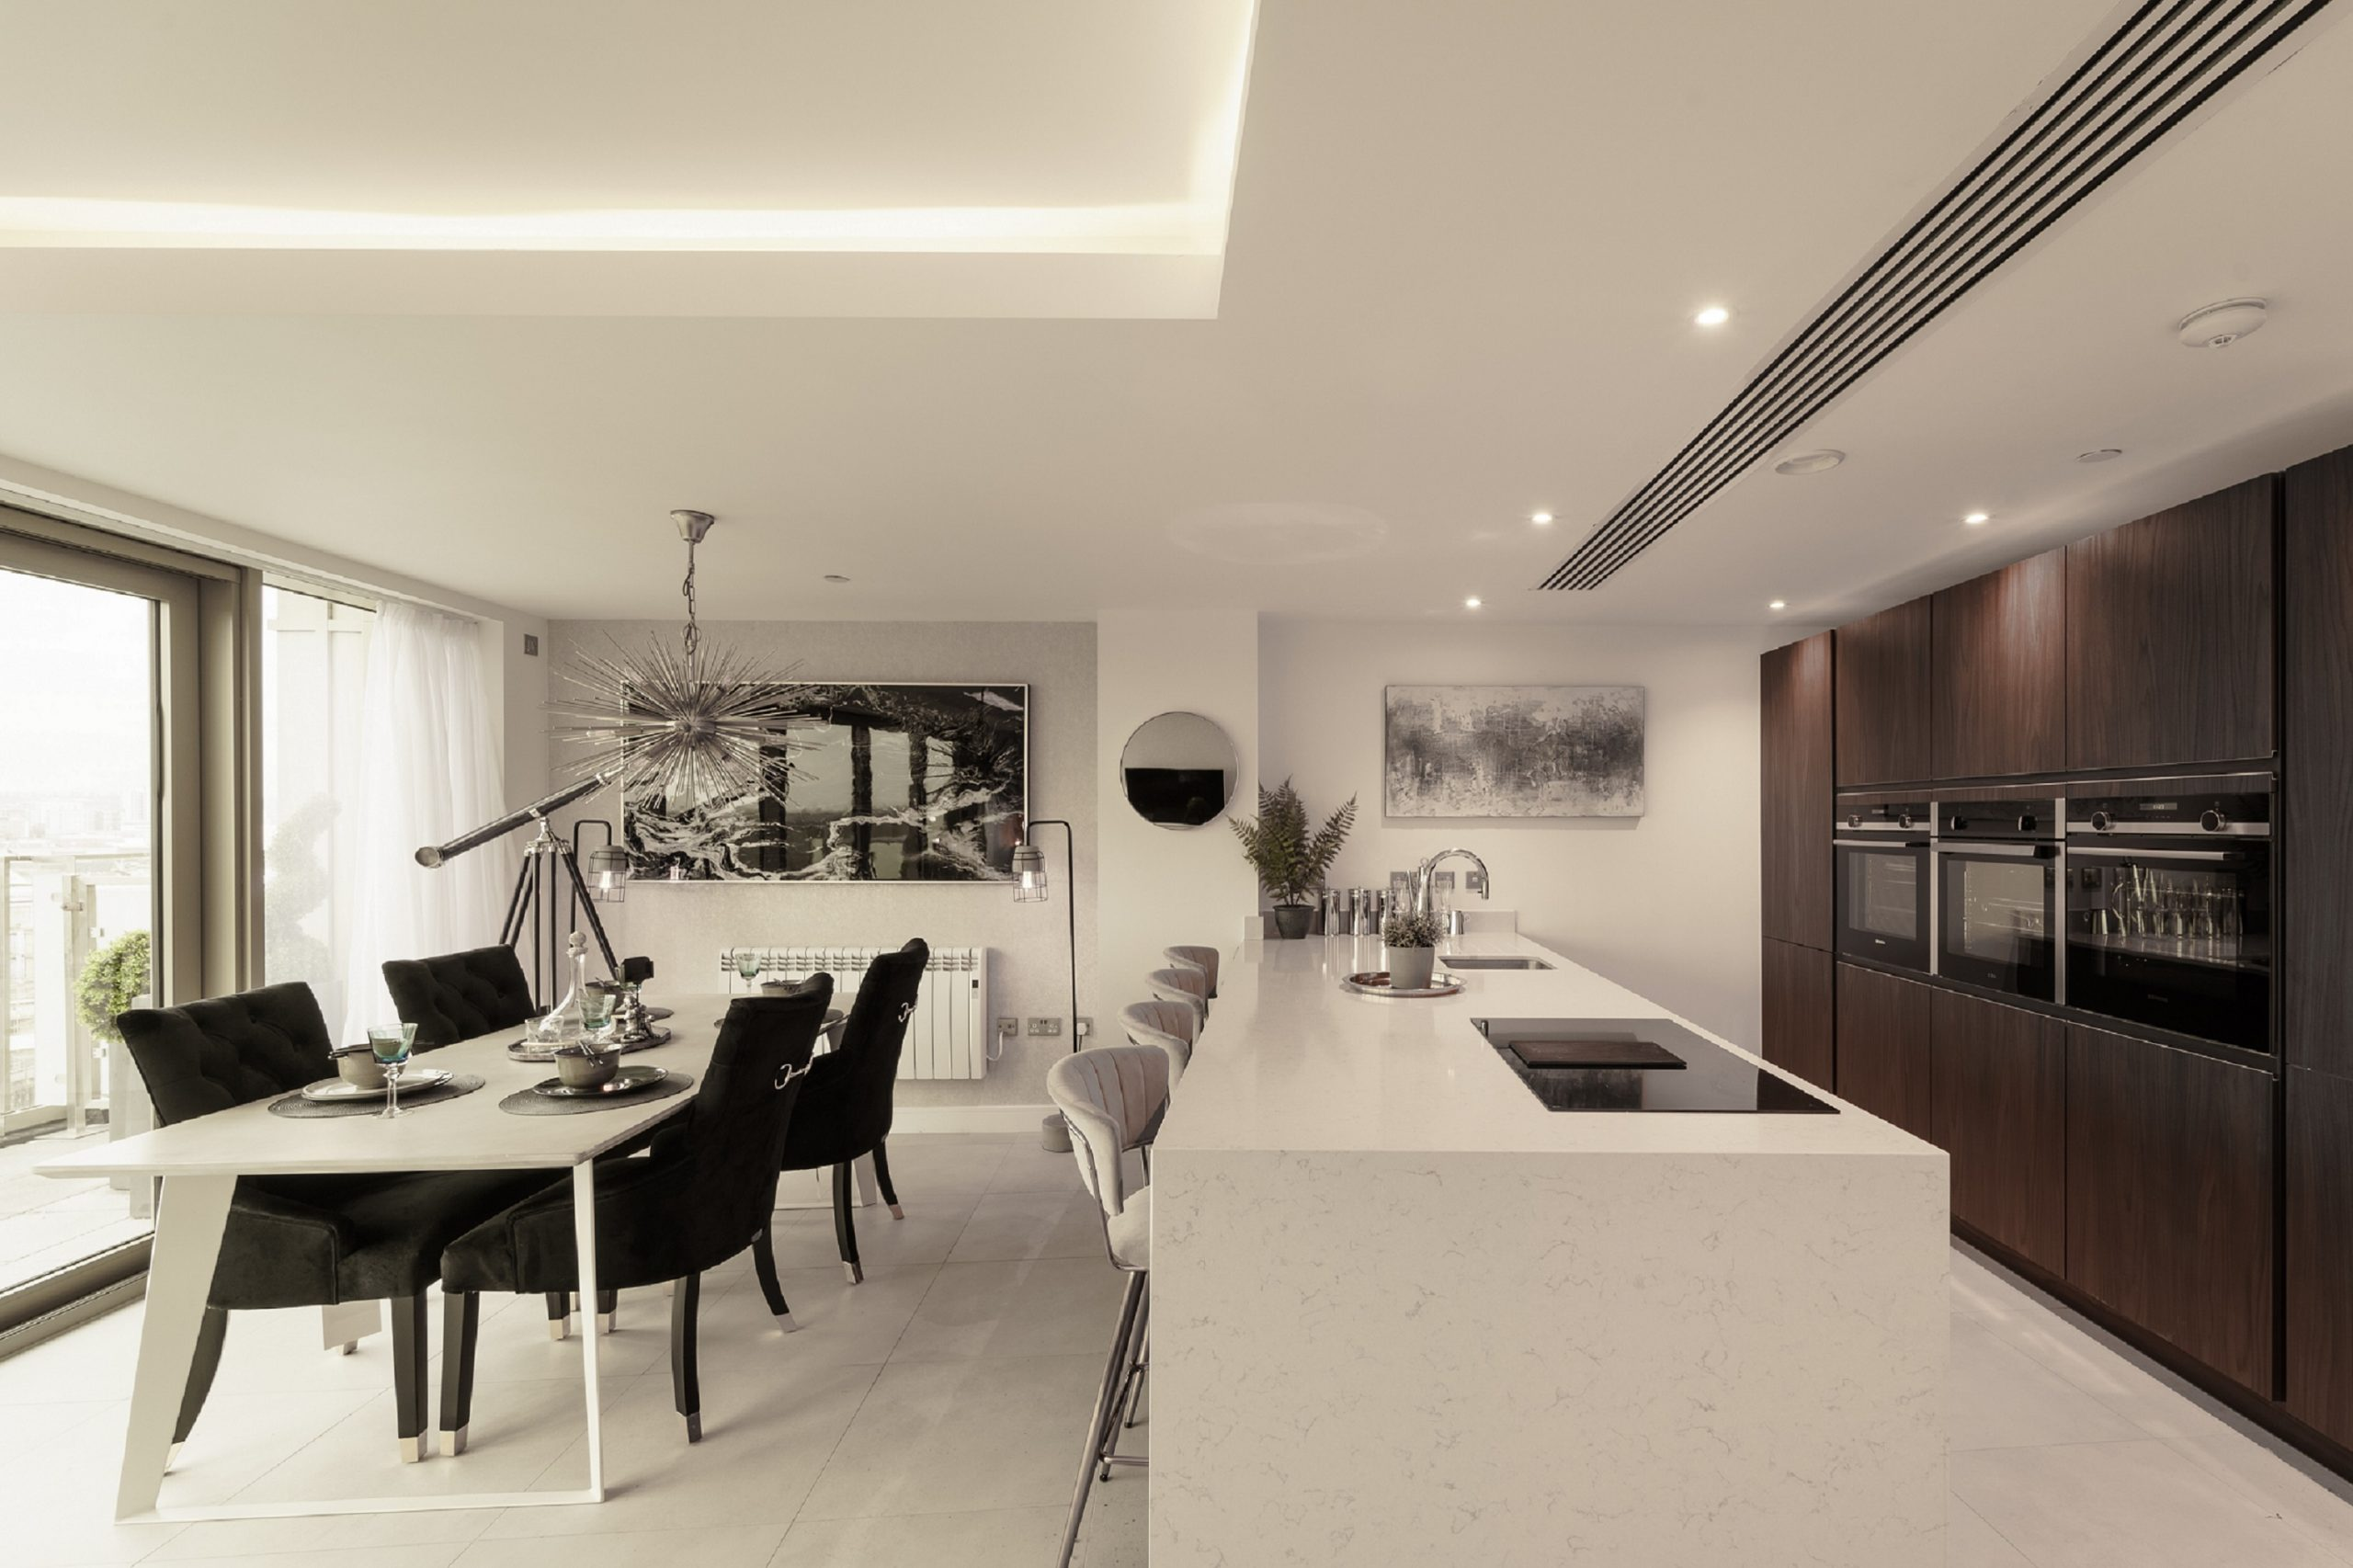 Waterside penthouse kitchen scaled